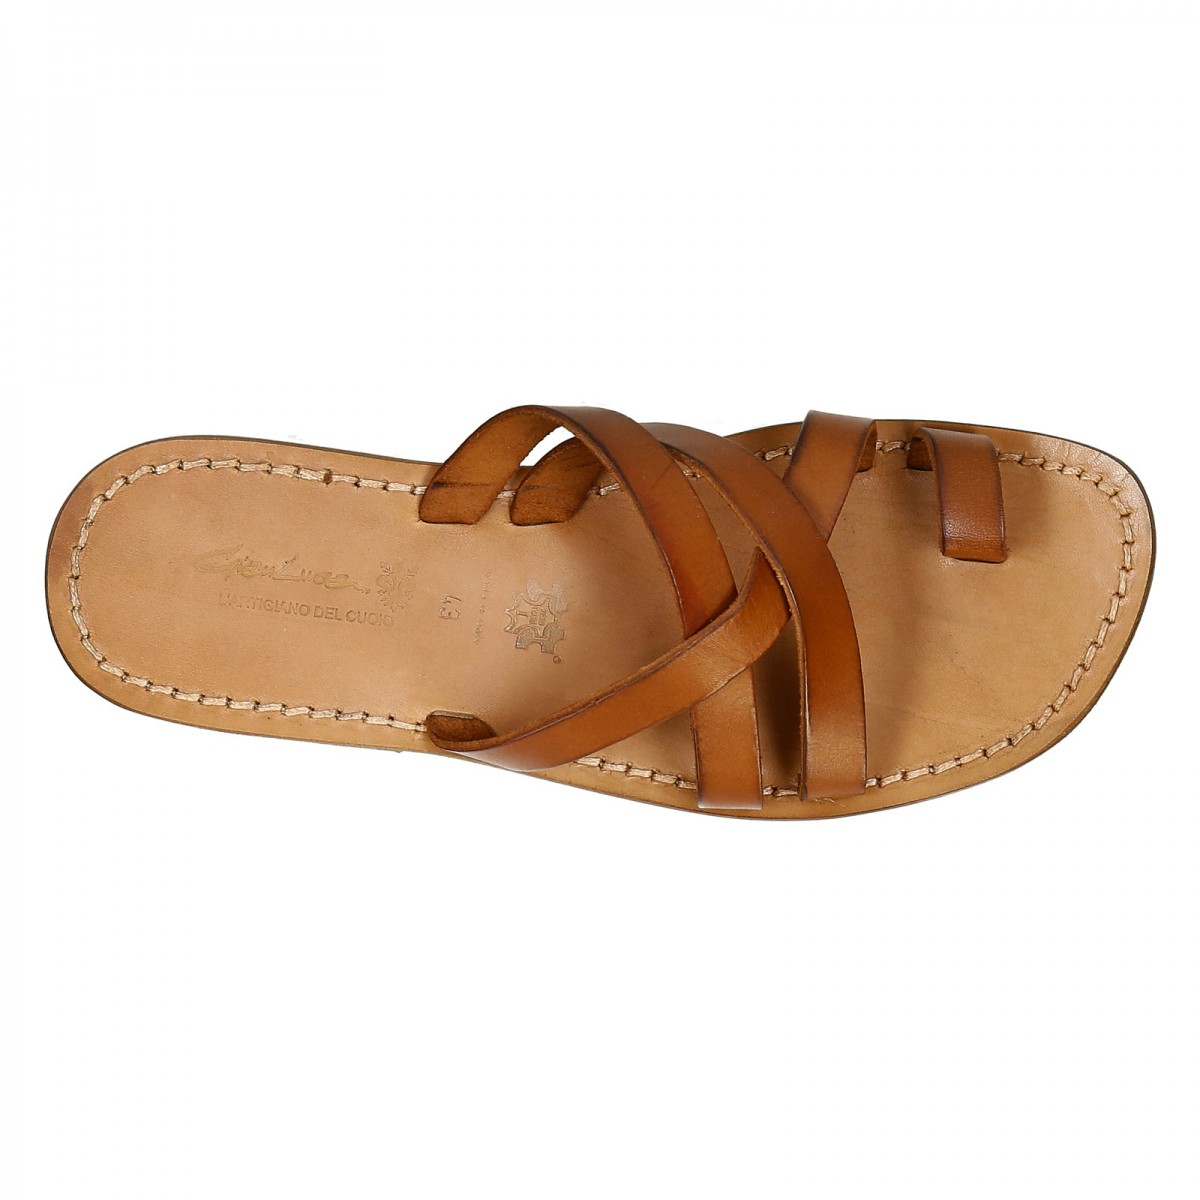 1cc880365 Mens leather thong sandals handmade in Italy in vintage cuir leather.  Previous. Next